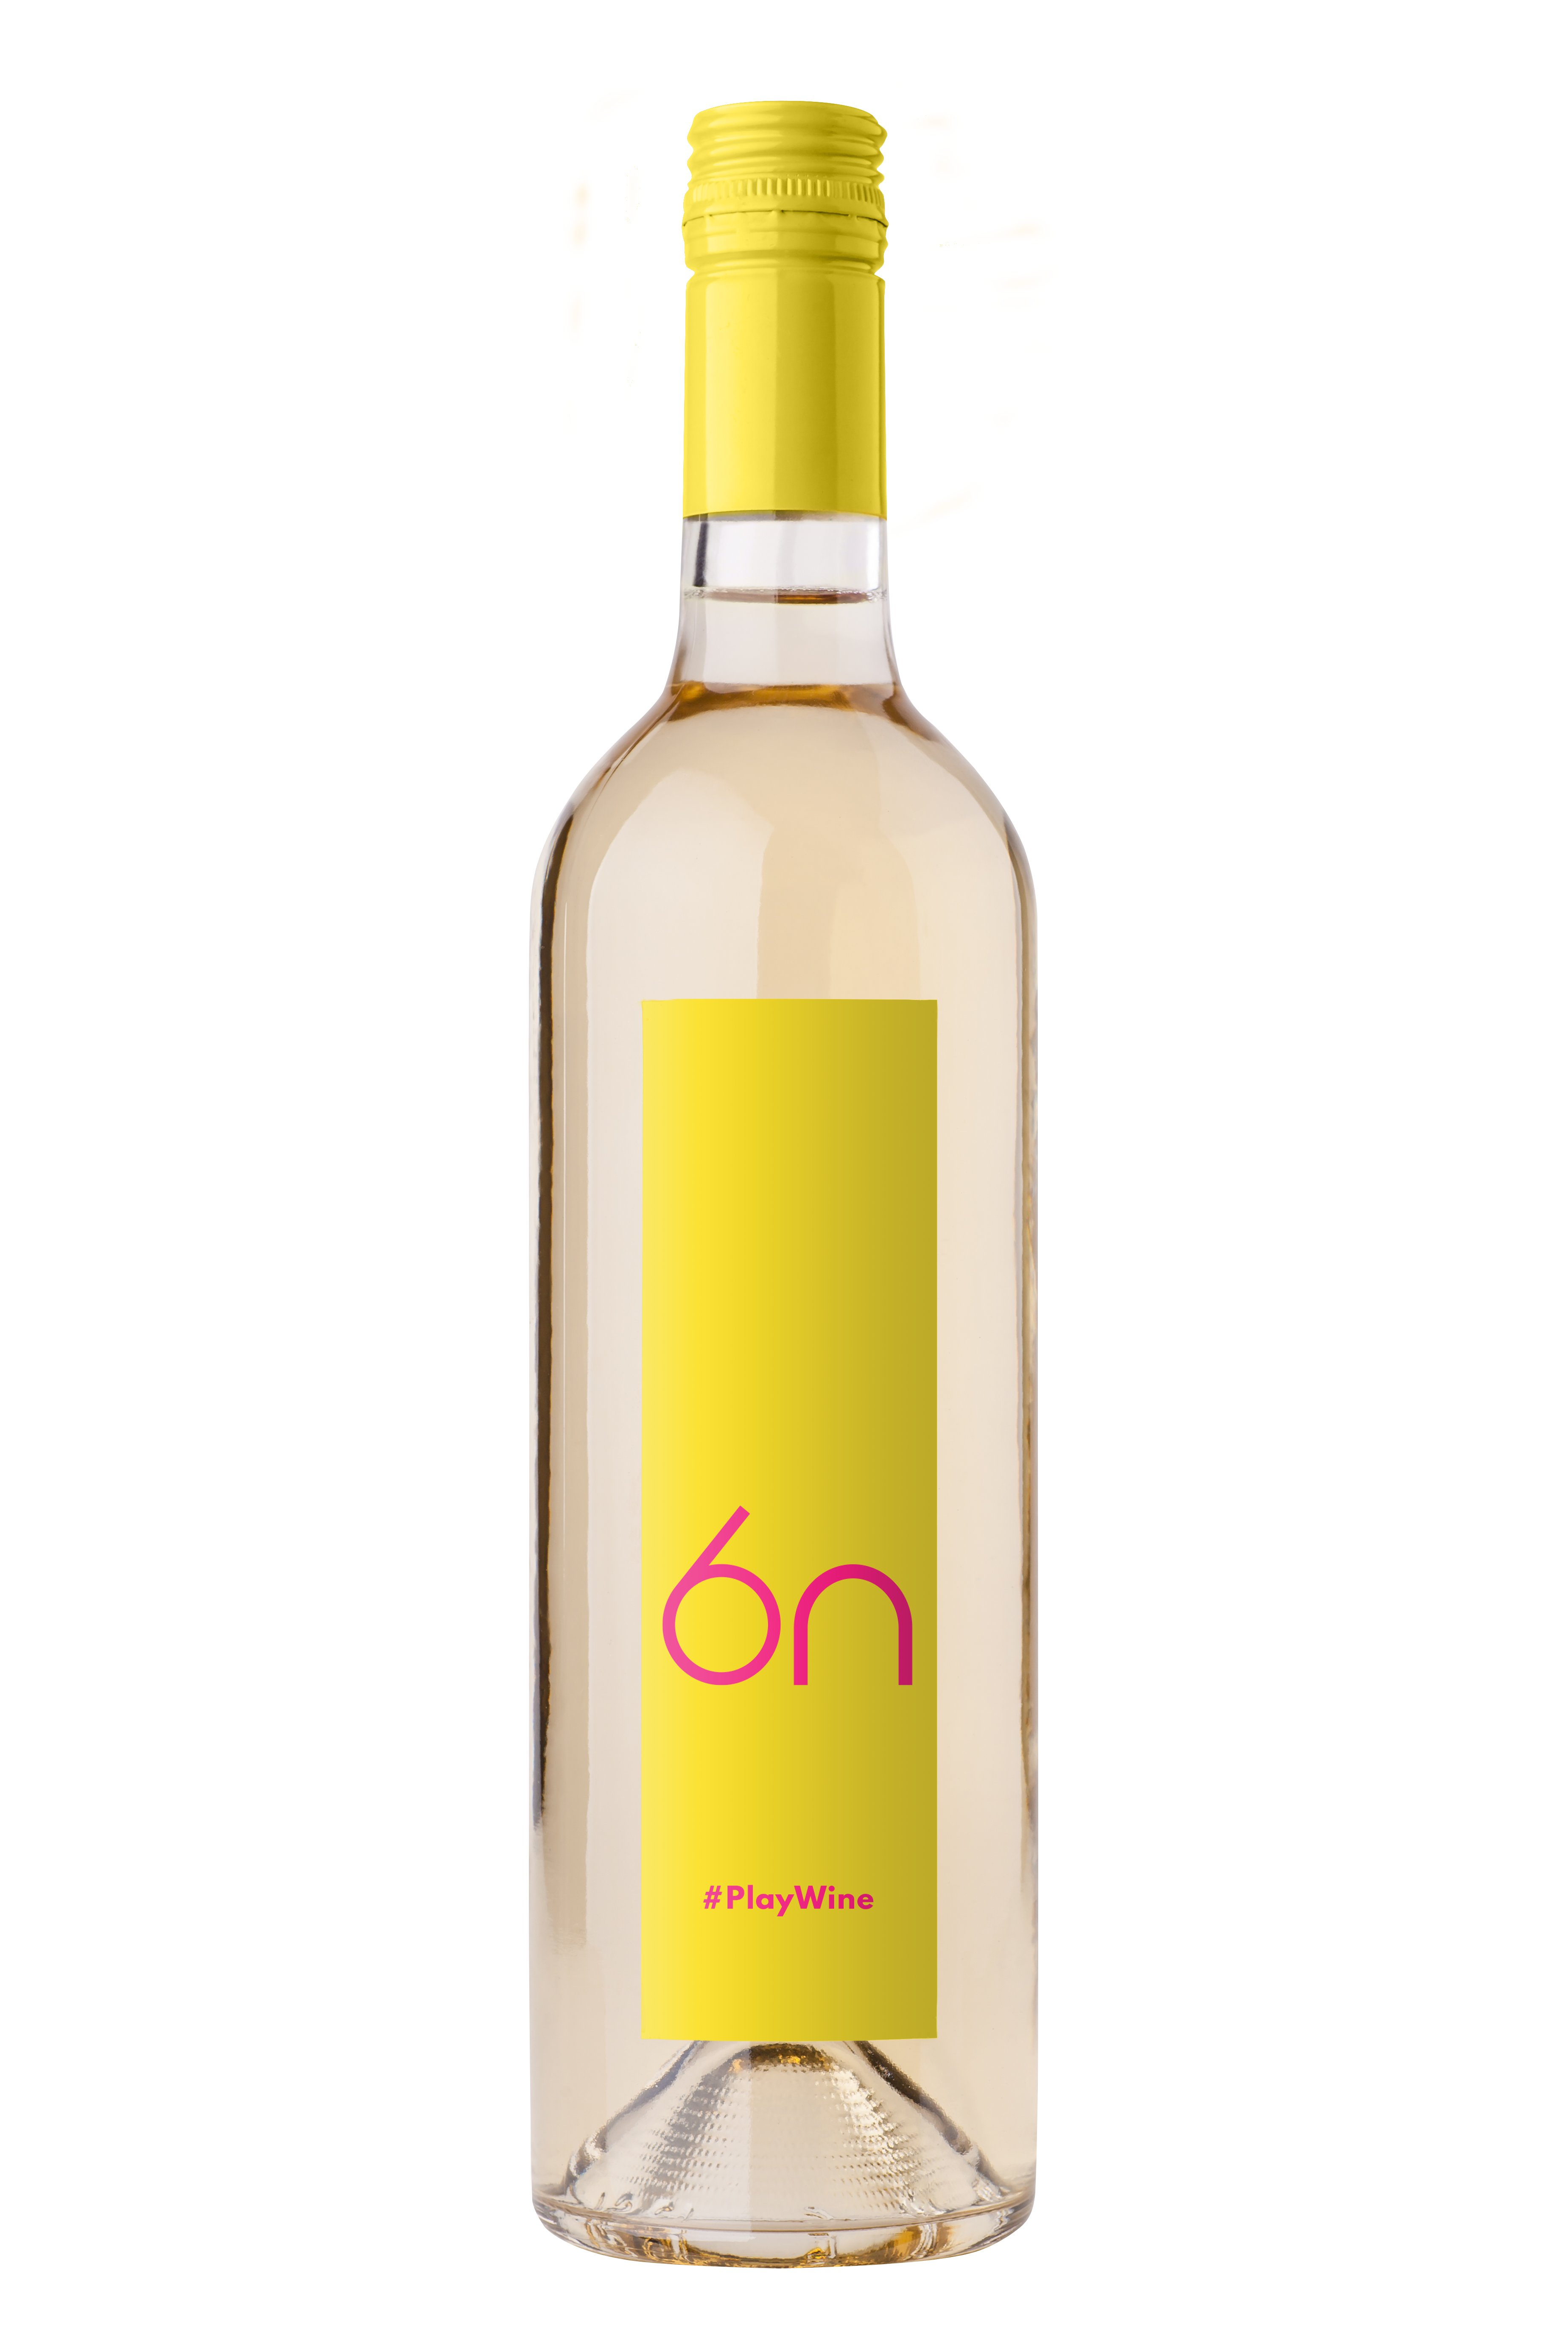 6n yellow #playwine